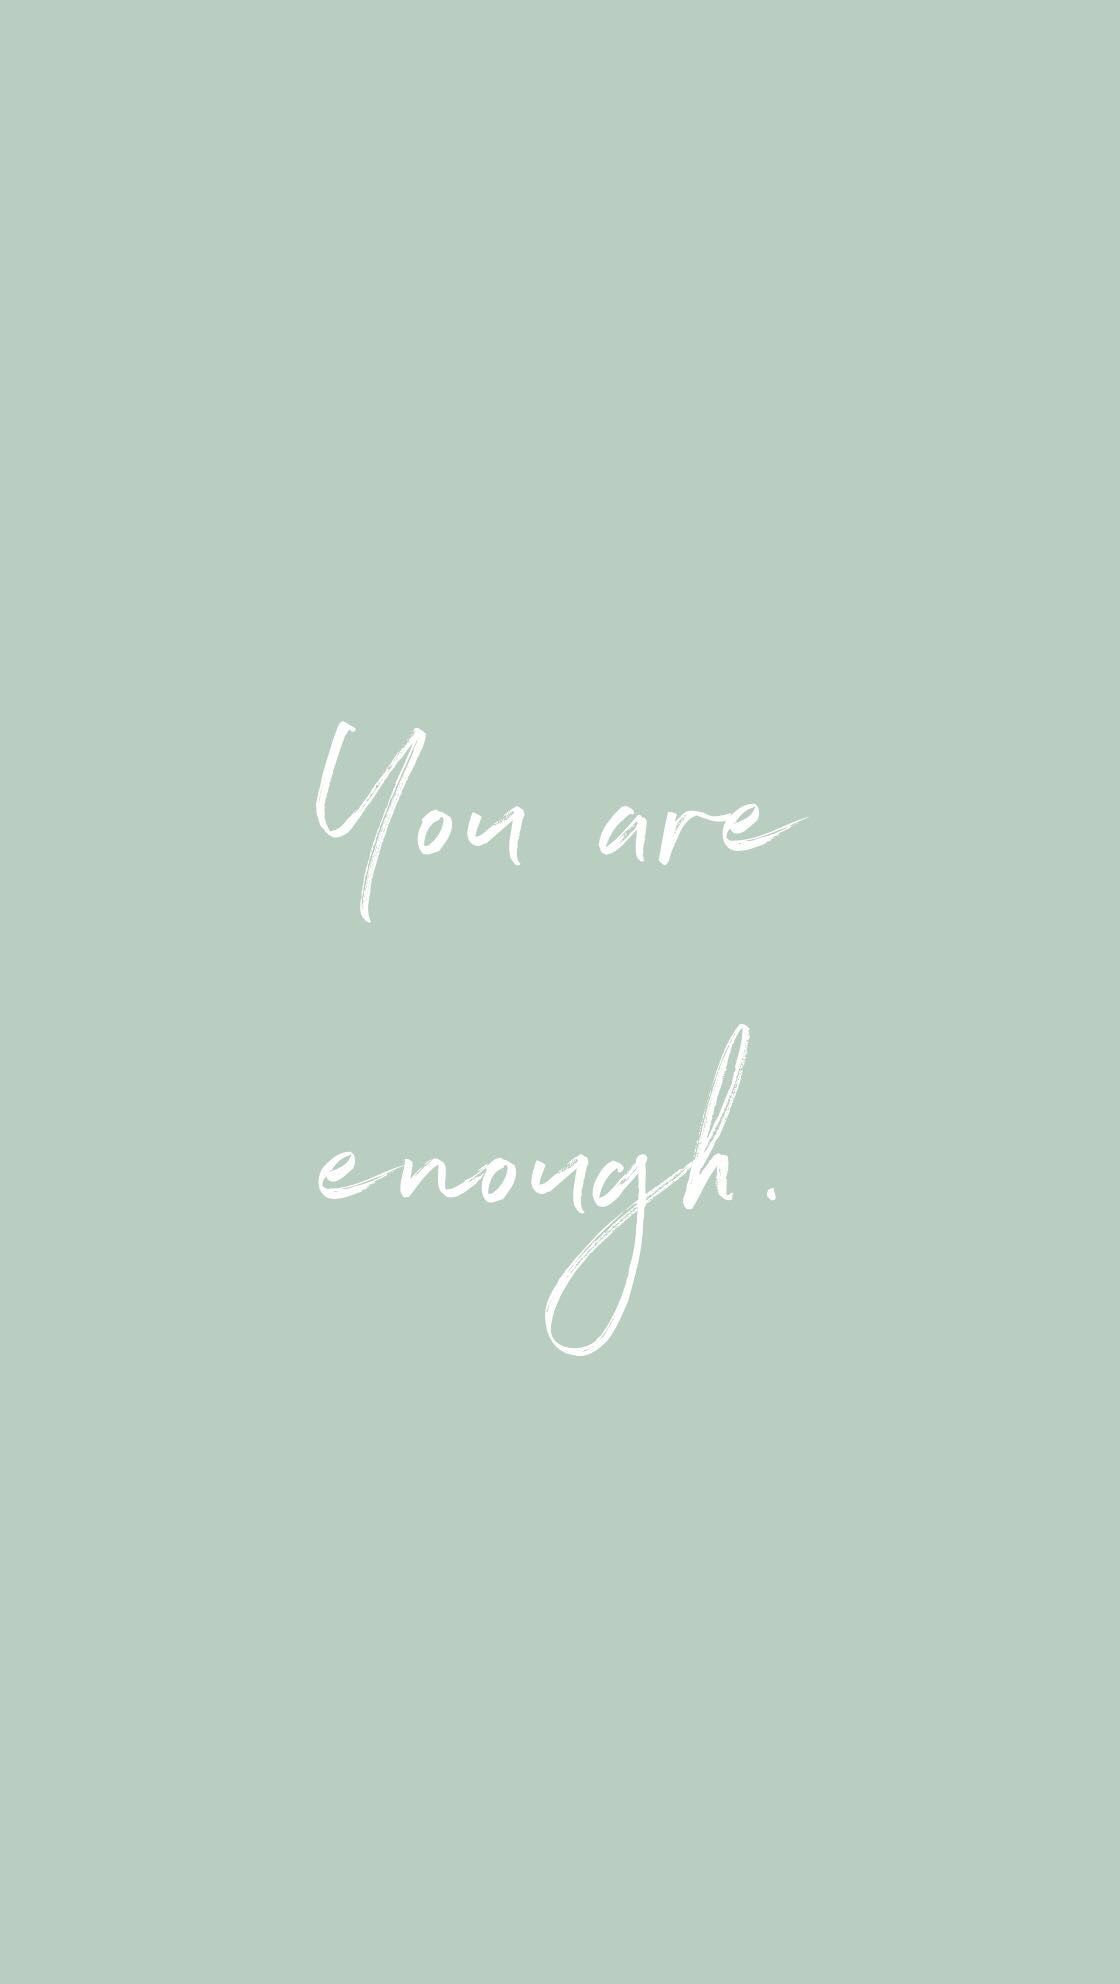 You are enough. You are enough. #inspirational #motivationalquotes